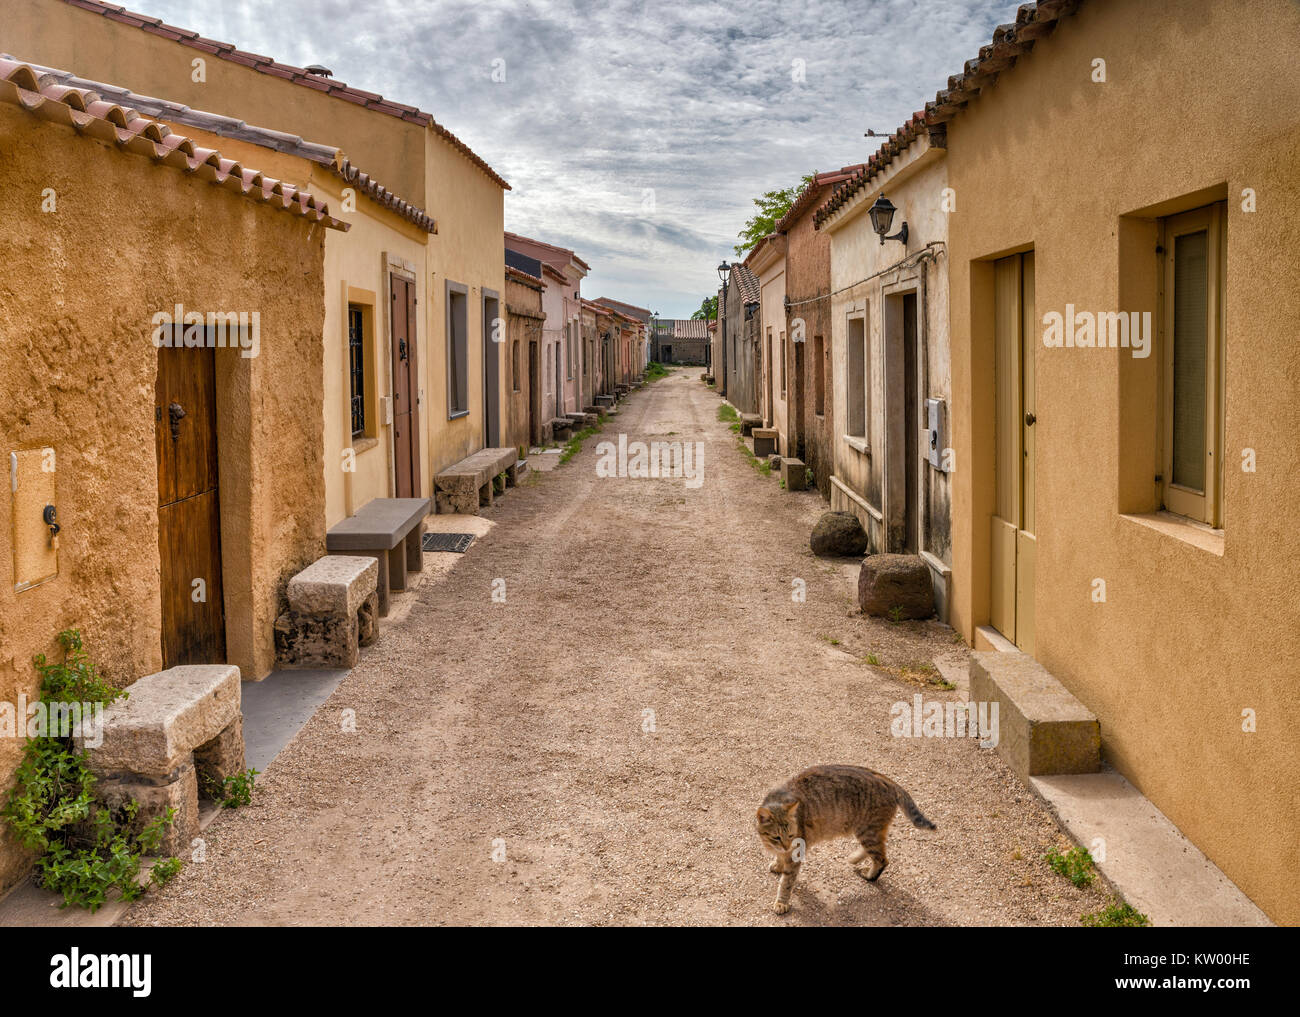 Lonely cat at street in a village, deserted most of the year, of San Salvatore, Sinis Peninsula, municipality of - Stock Image